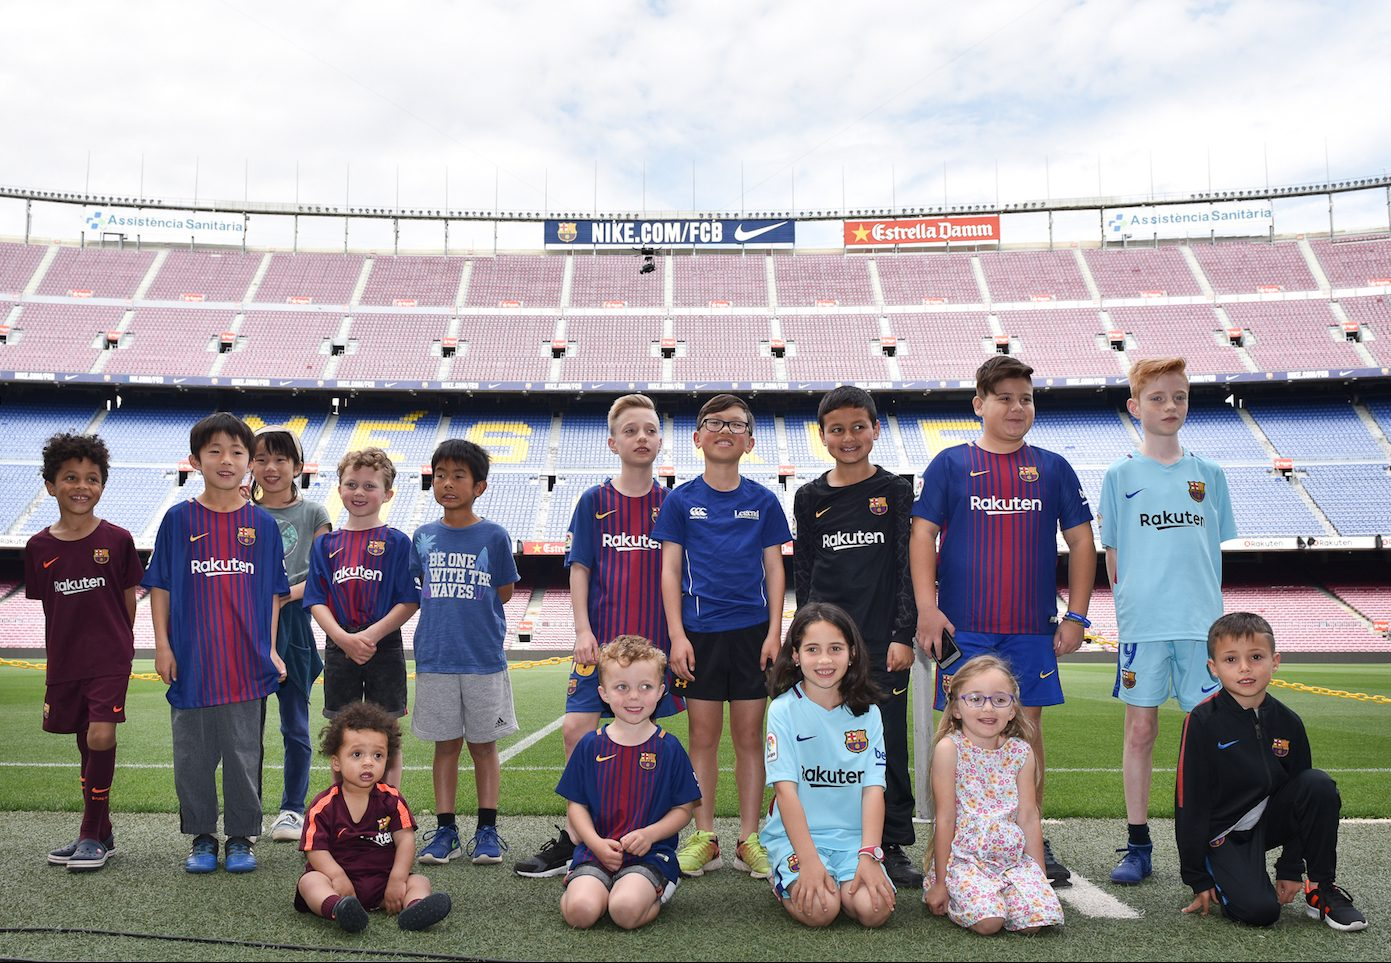 """Rakuten welcomed 11 """"Young Ambassadors"""" from around the world to Barcelona to promote SDGs & cheer on their favorite footballers. Here were the highlights:"""